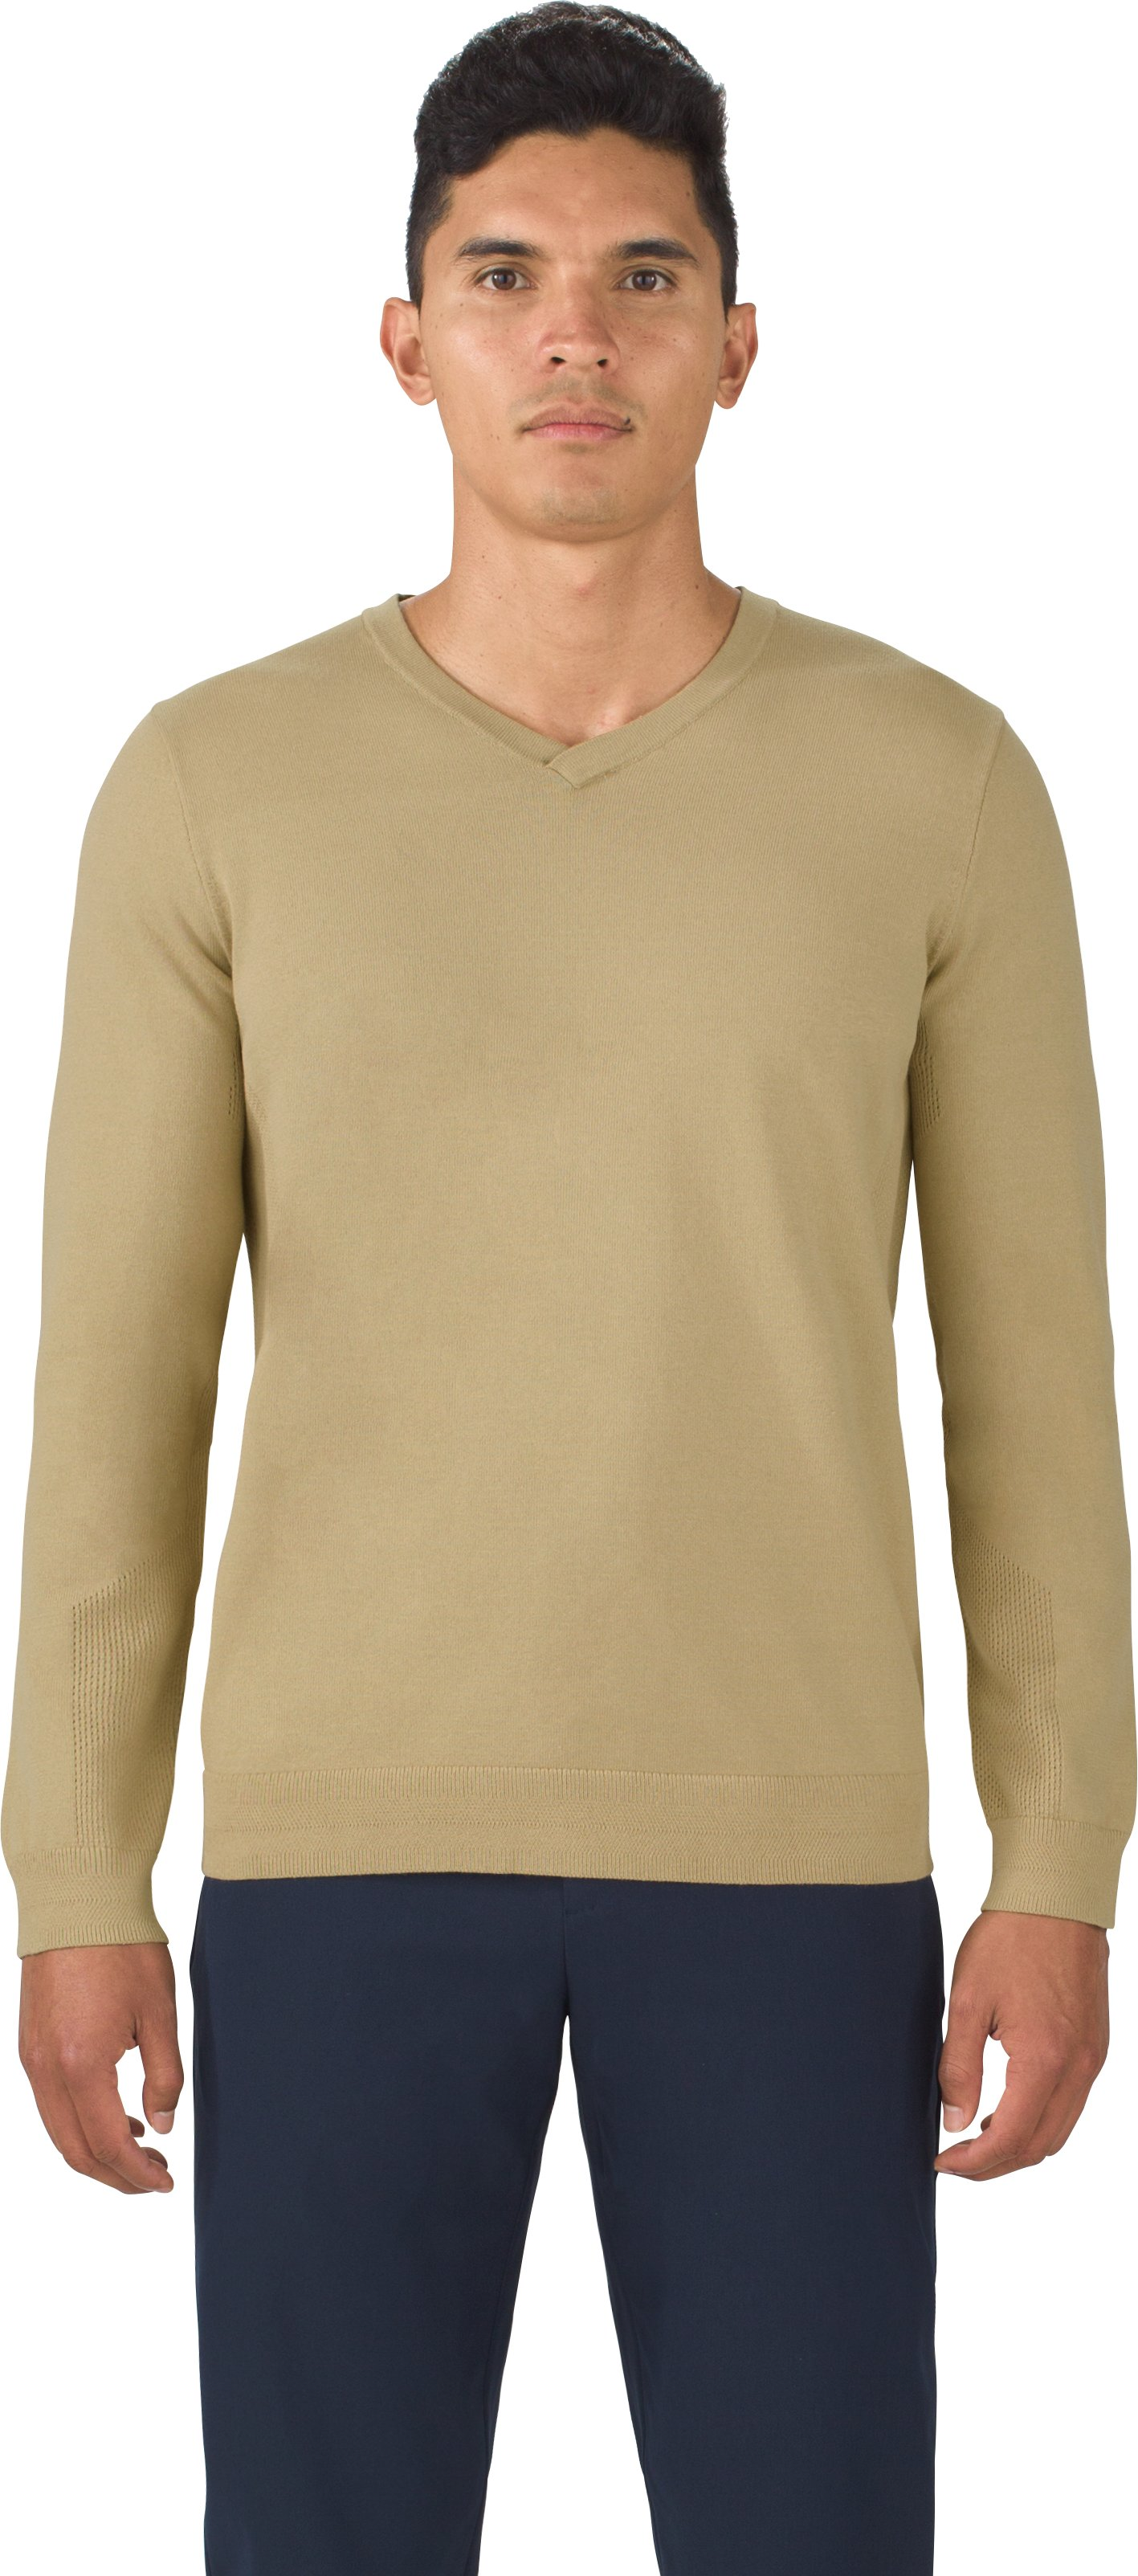 Men's UAS Engineered Knit Sweater 1 Color $97.50